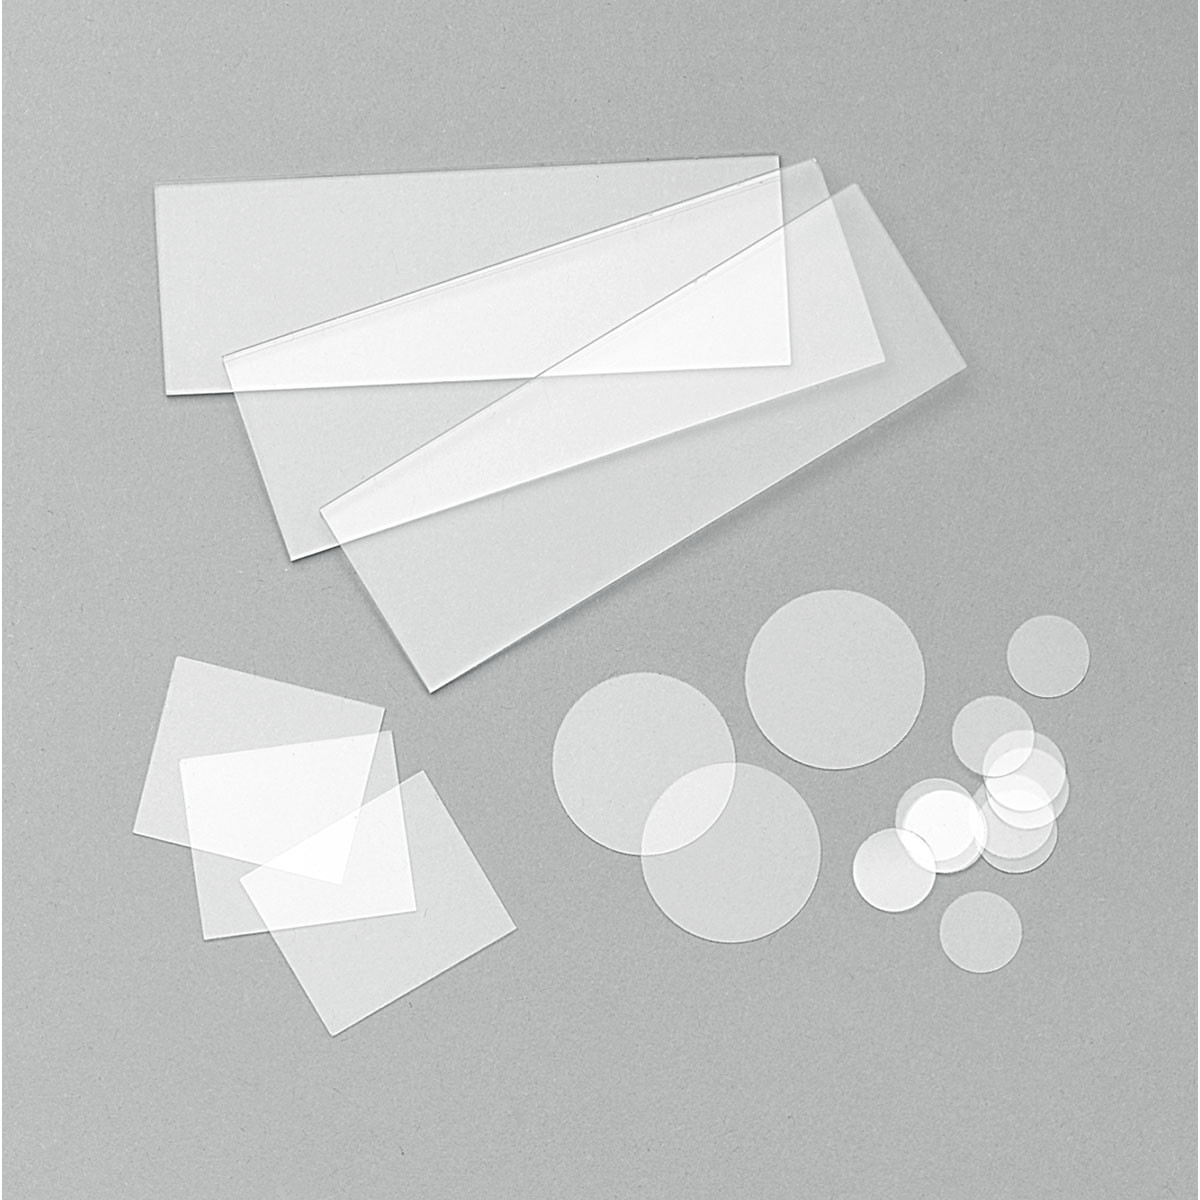 Microscope Slides 76x26mm, 1.0-1.2, frosted one end (50/pack)